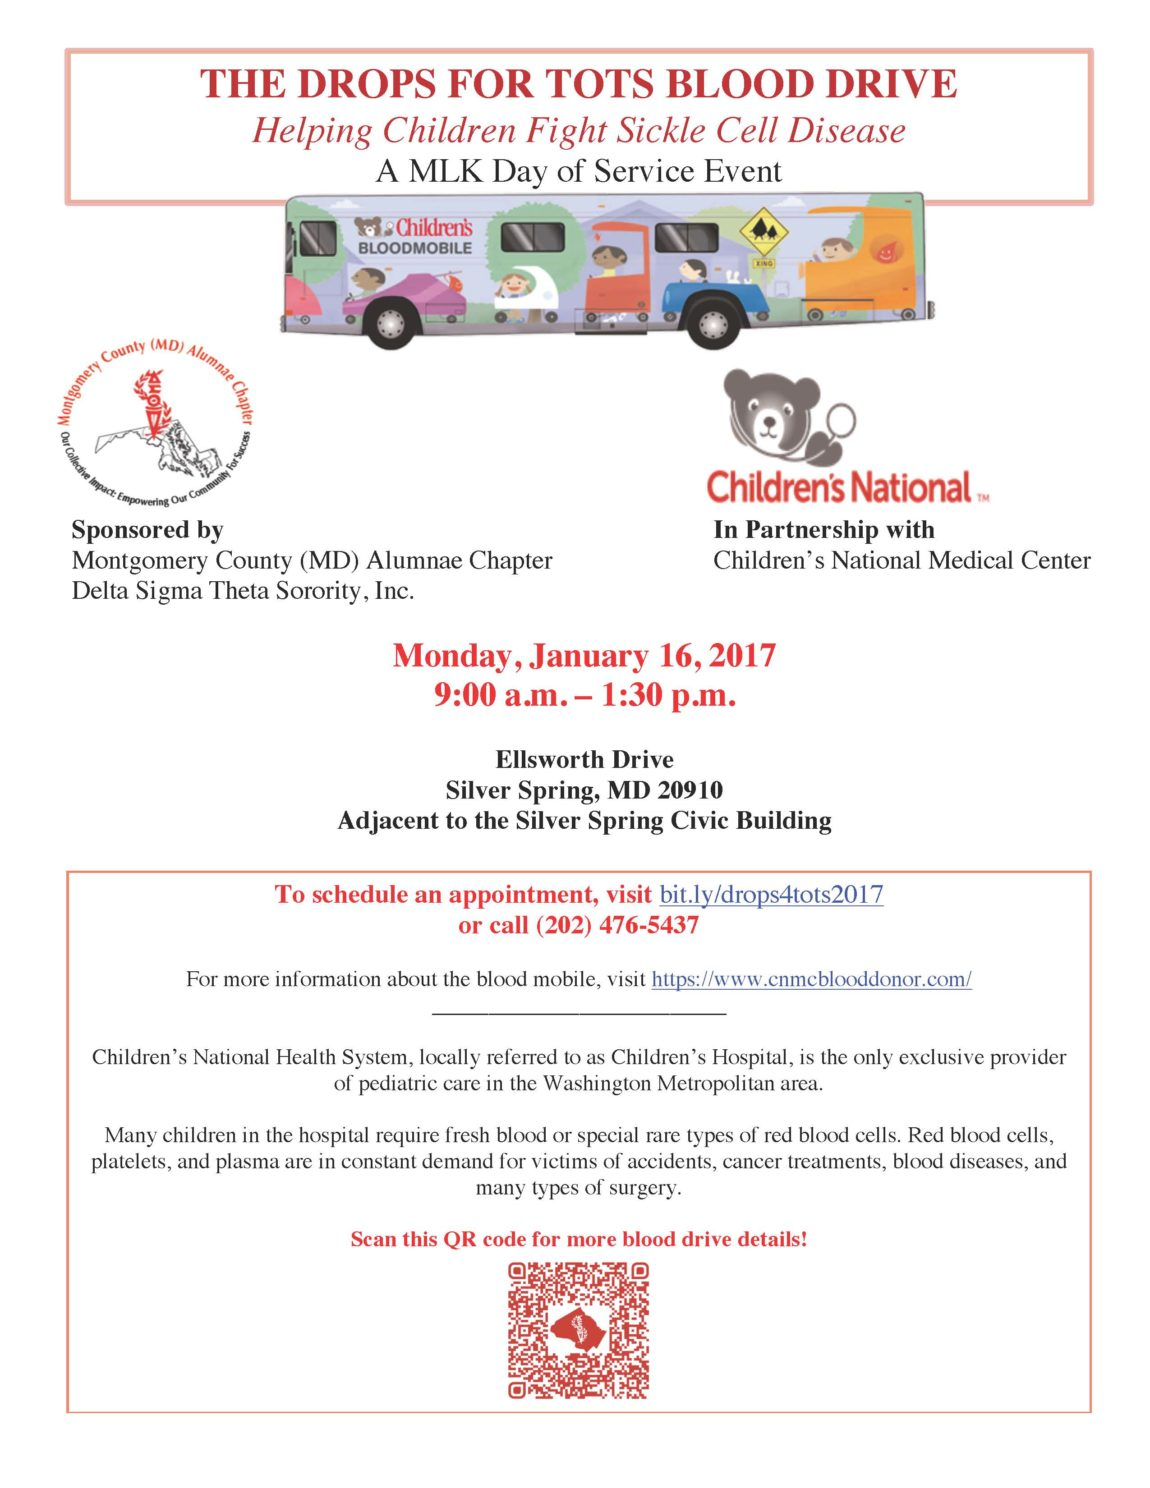 MCAC-Drops-for-Tots-Blood-Drive-Flyer-Revised.jpg